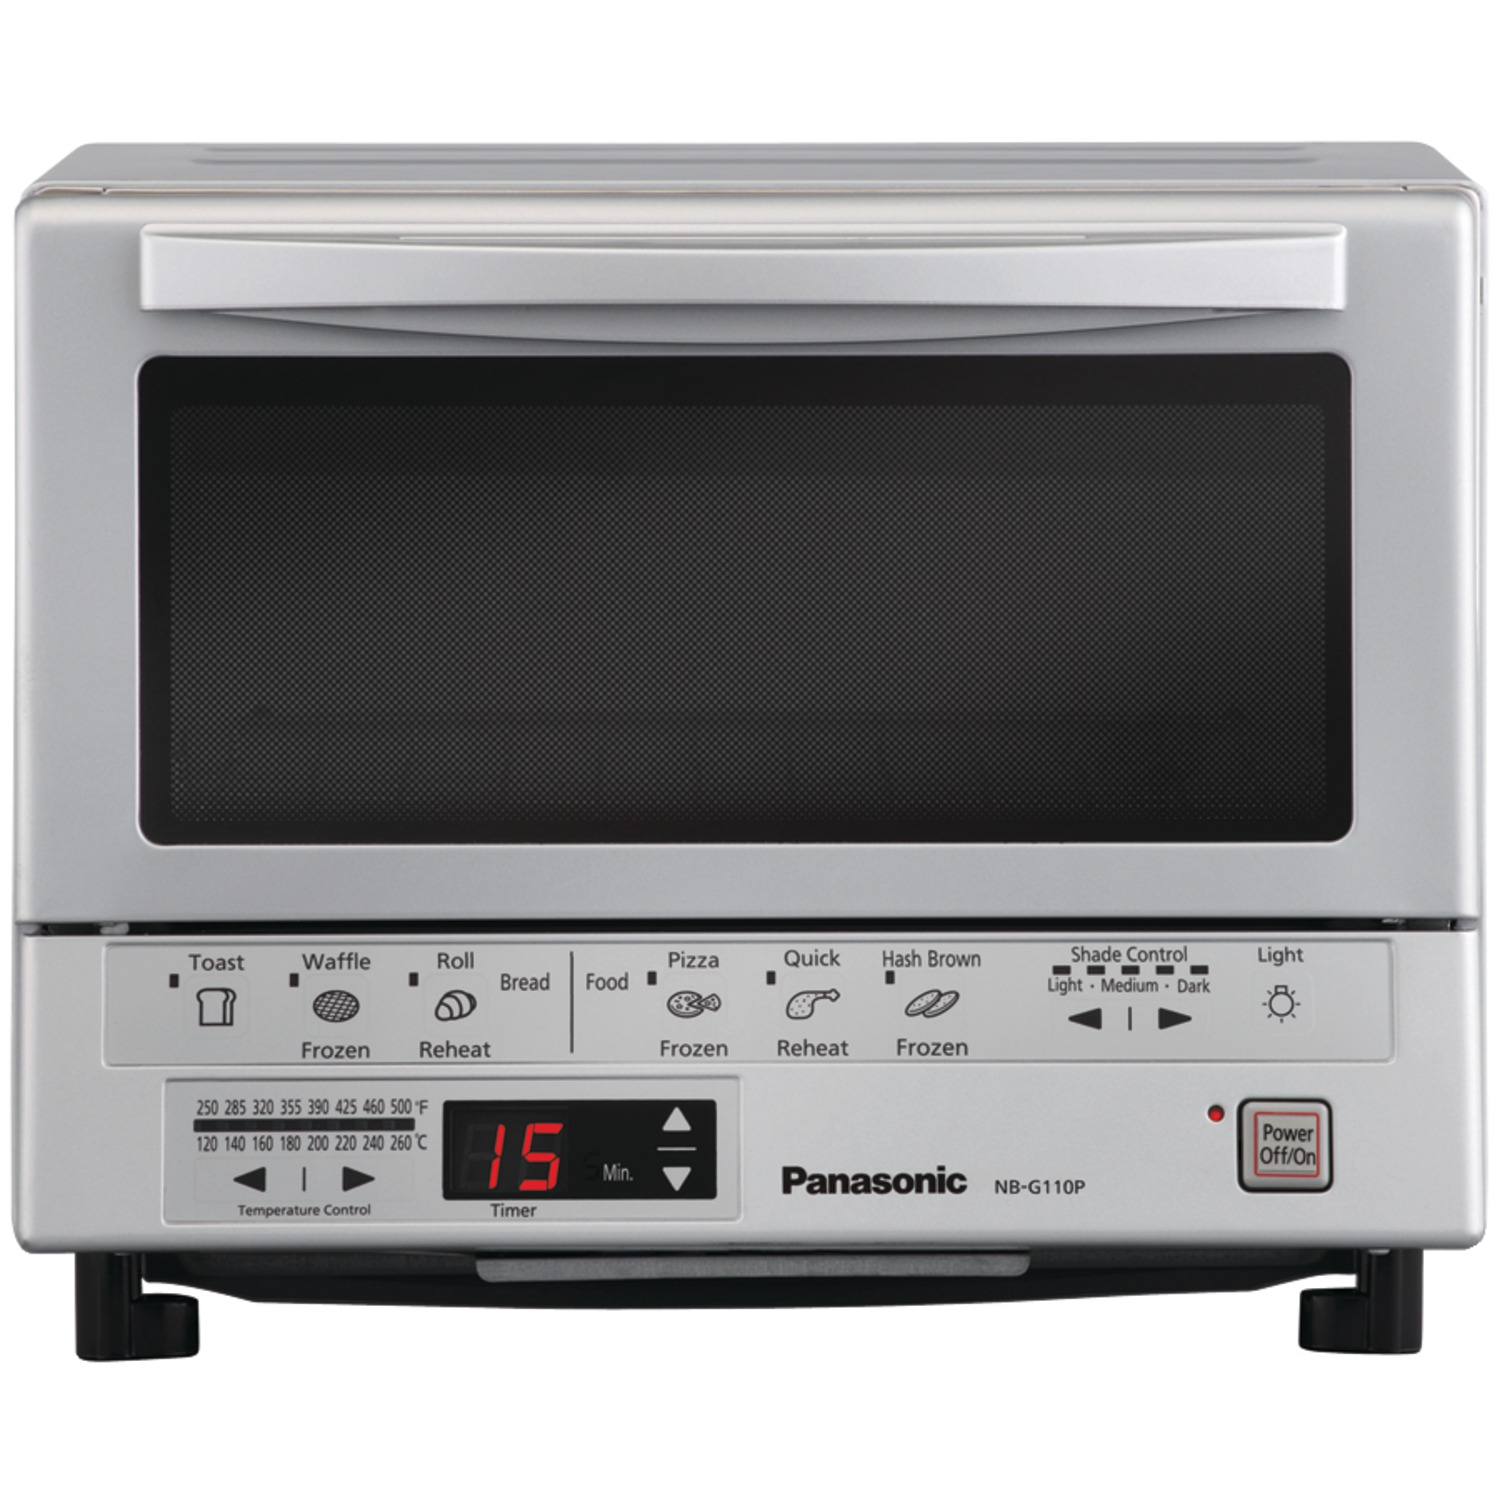 Panasonic Flashxpress Toaster Oven With Double Infrared Heating, Silver, 1300W, 120V Ac, 60Hz